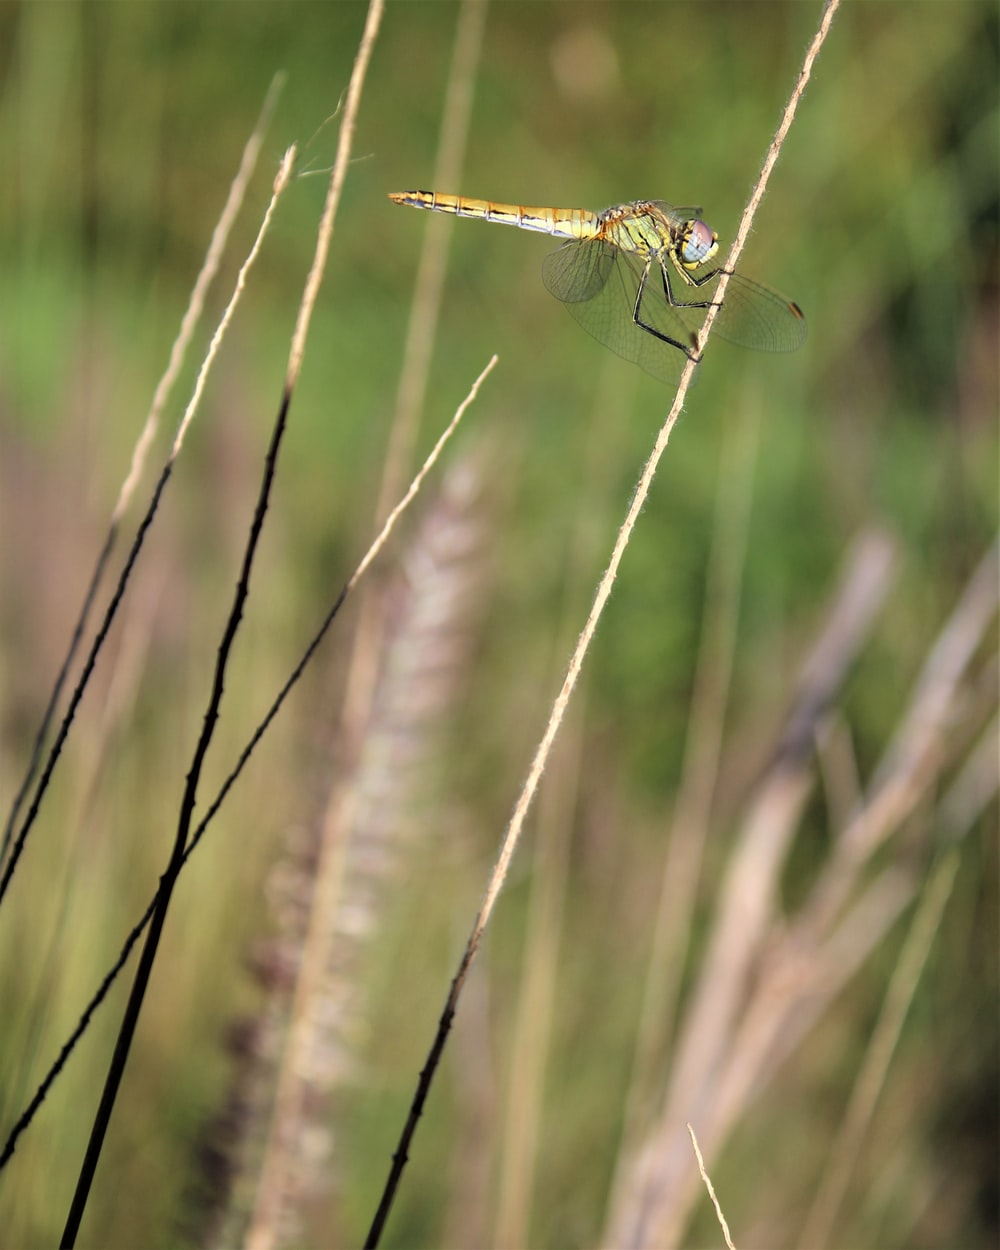 green dragonfly perched on green grass in close up photography during daytime